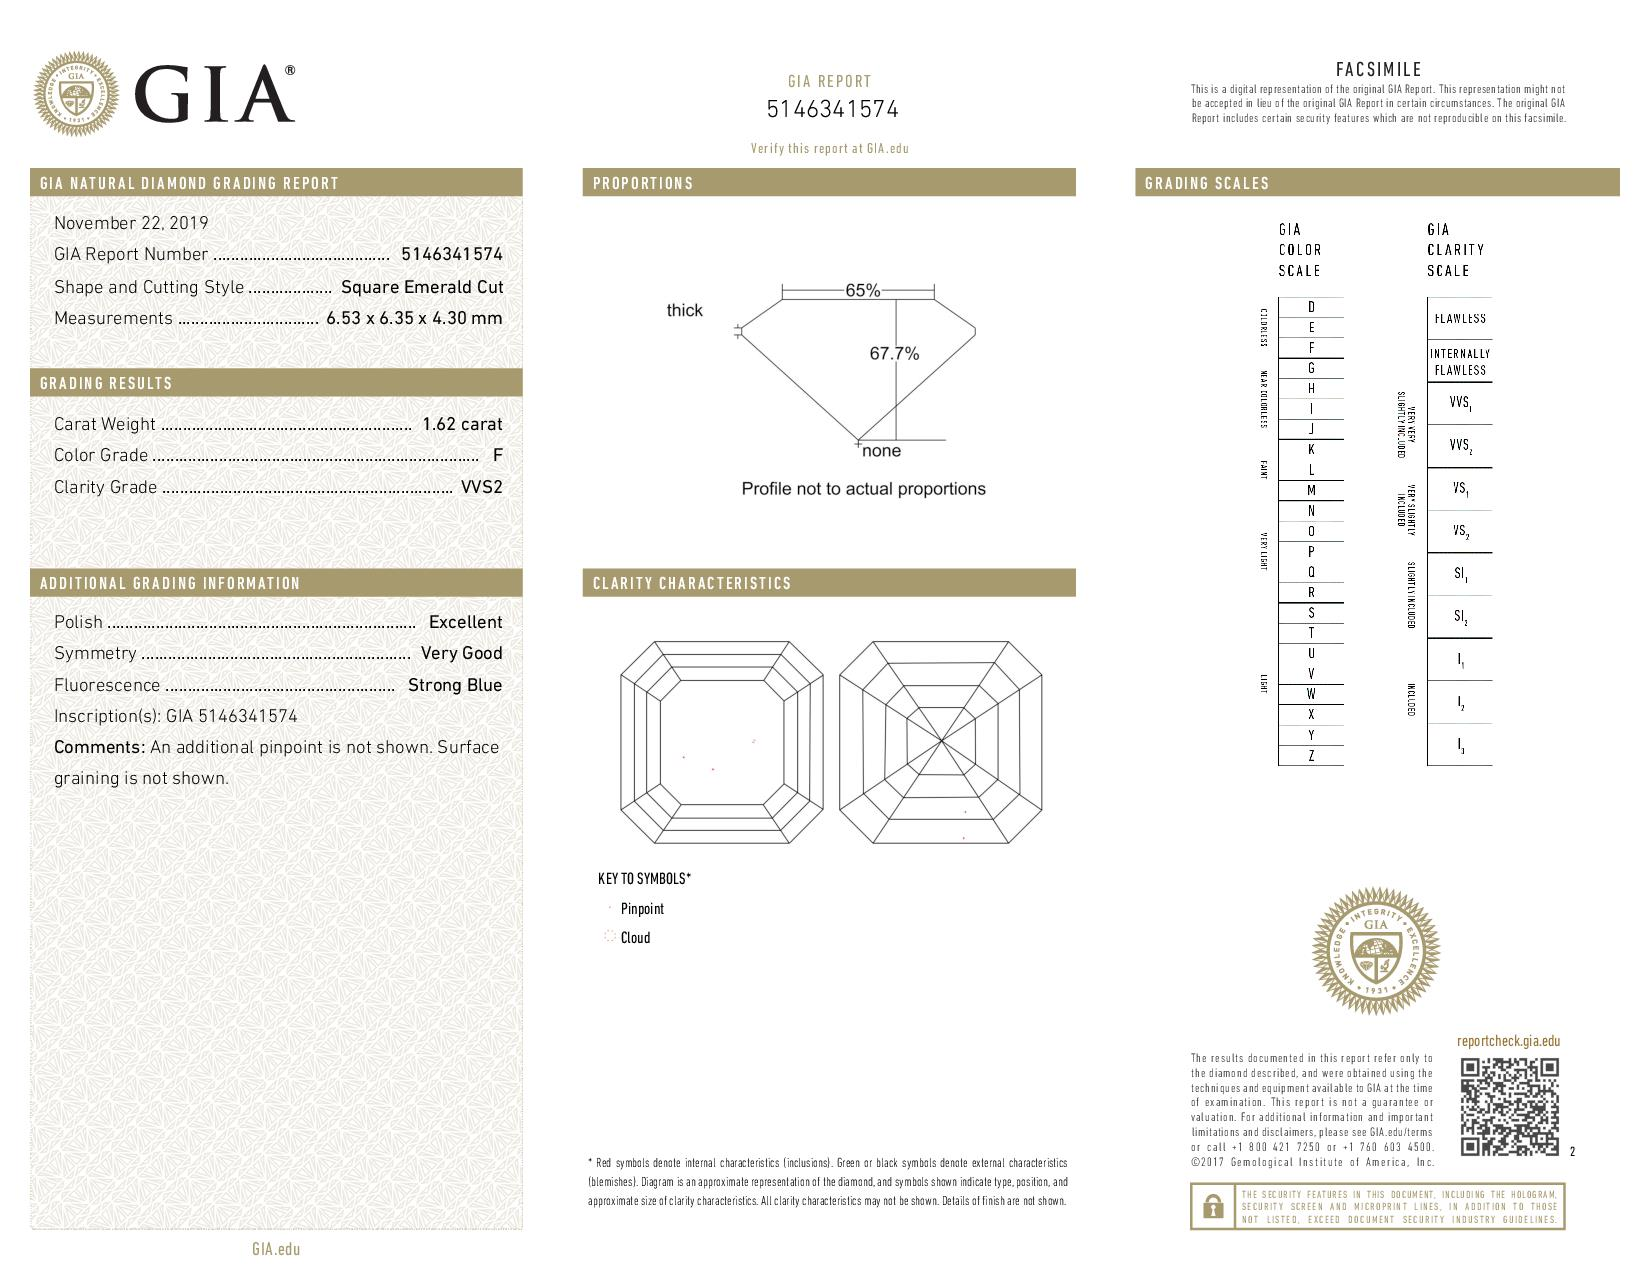 This is a 1.62 carat asscher shape, F color, VVS2 clarity natural diamond accompanied by a GIA grading report.